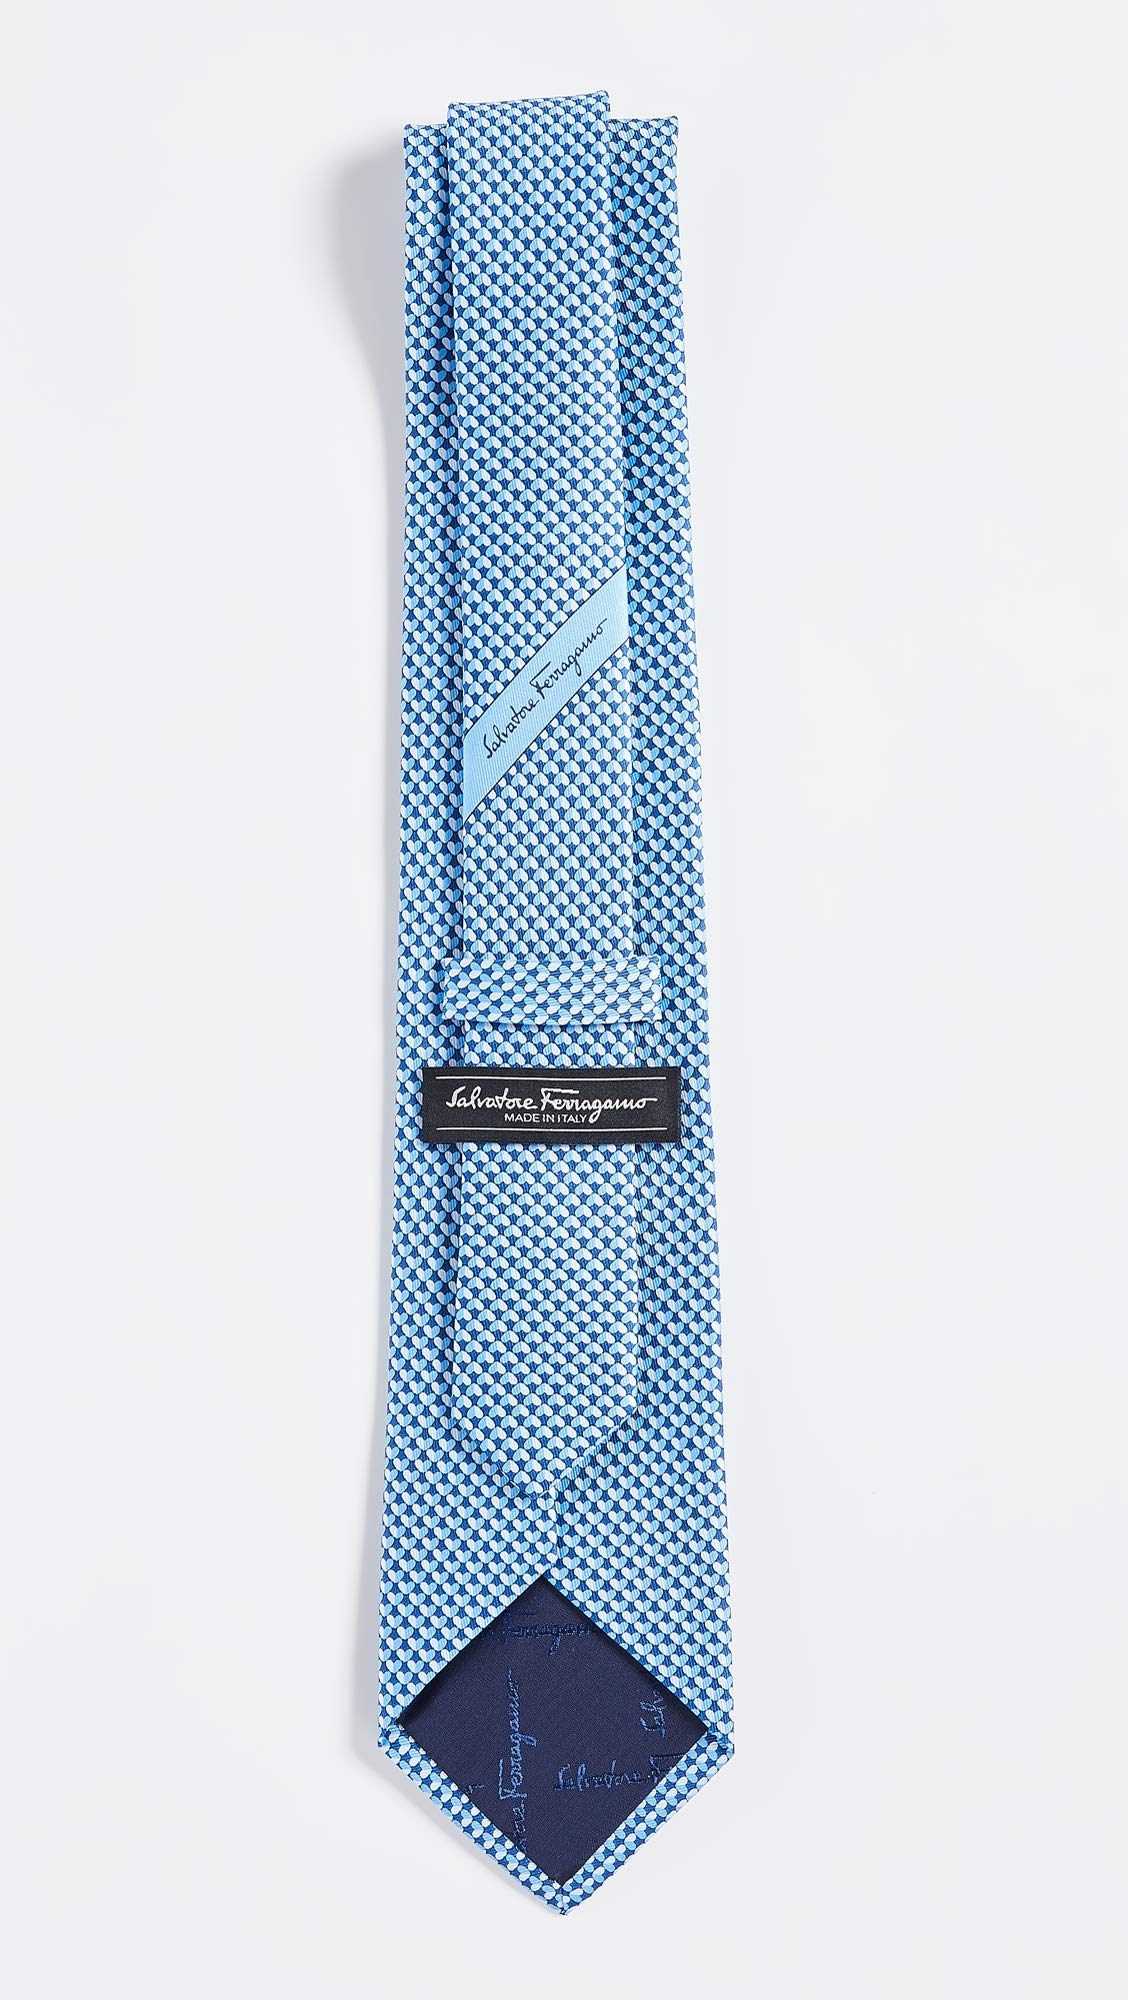 Salvatore Ferragamo Men's Heart Tie, Blue, One Size by Salvatore Ferragamo (Image #4)